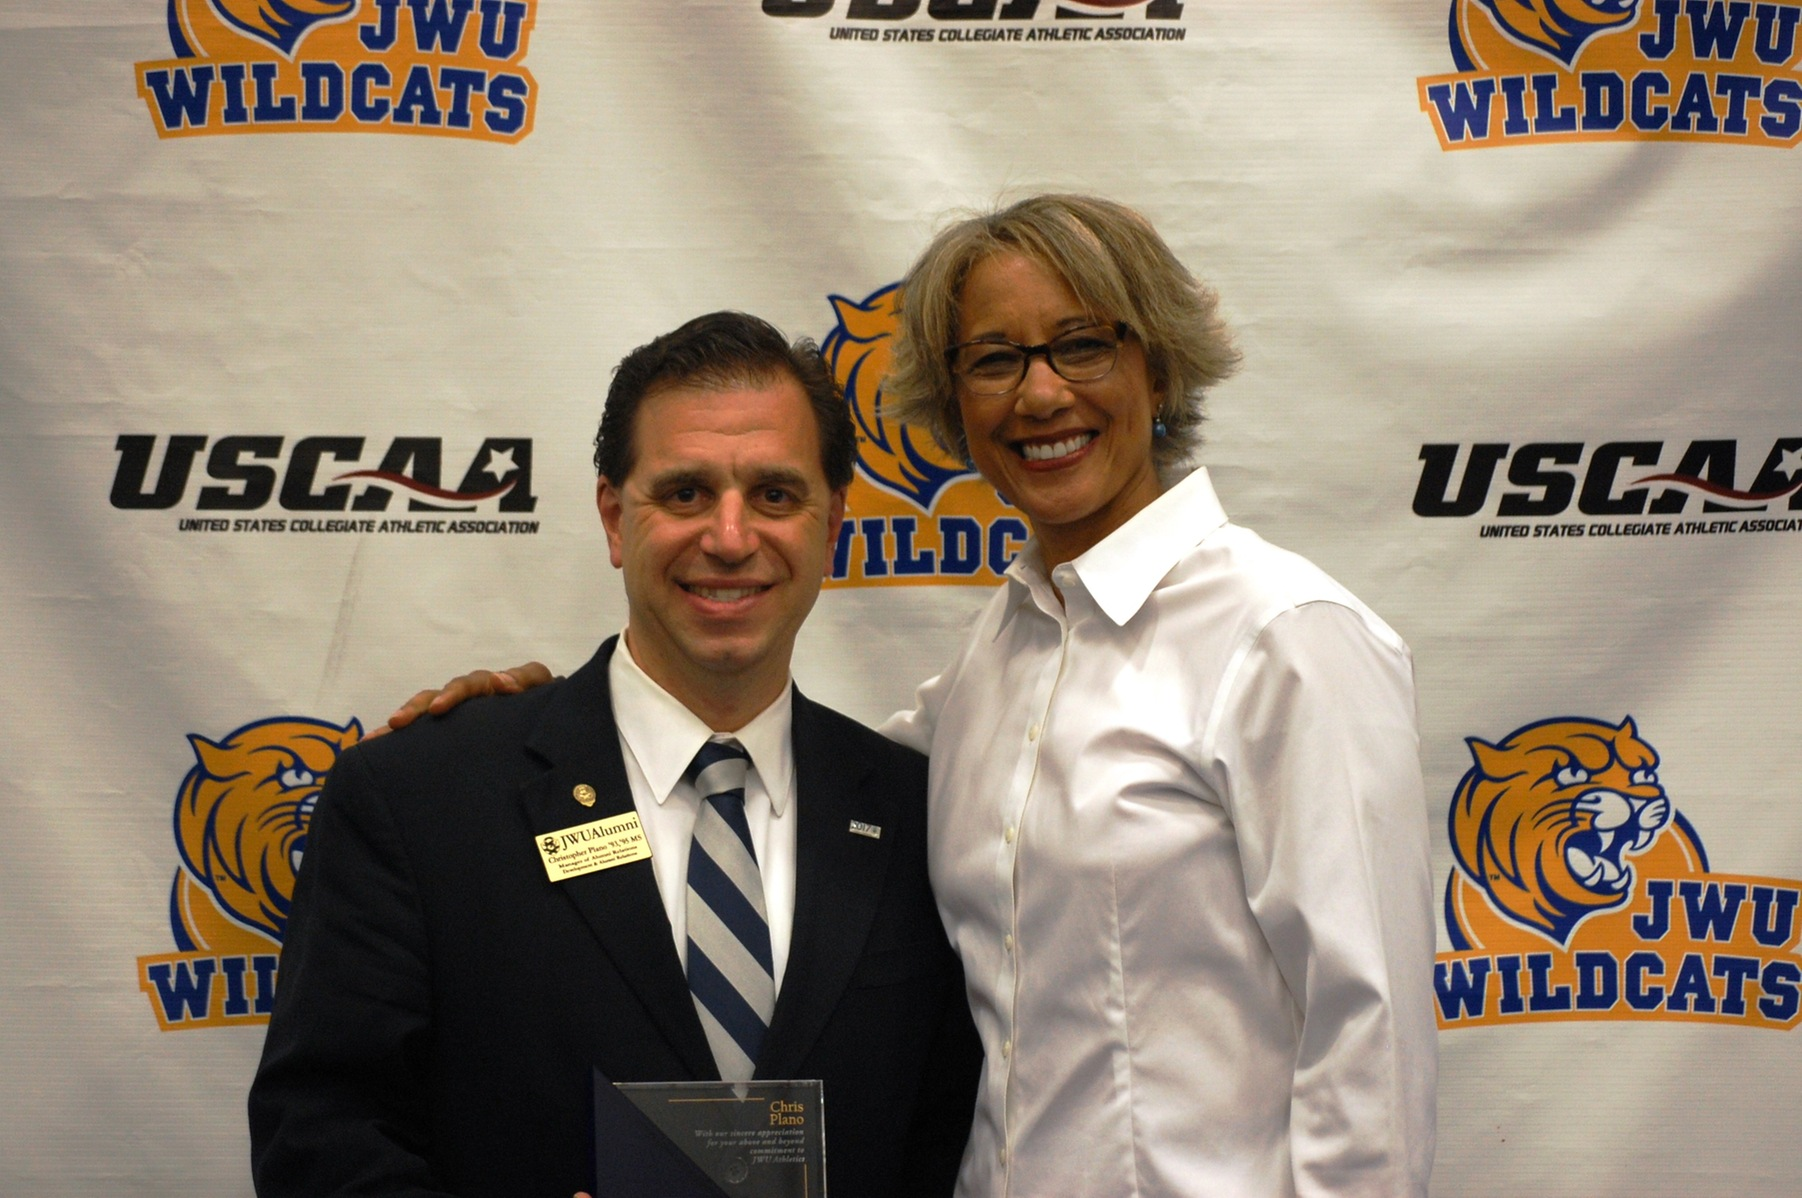 Wildcat Student-Athletes Honored at Awards Banquet